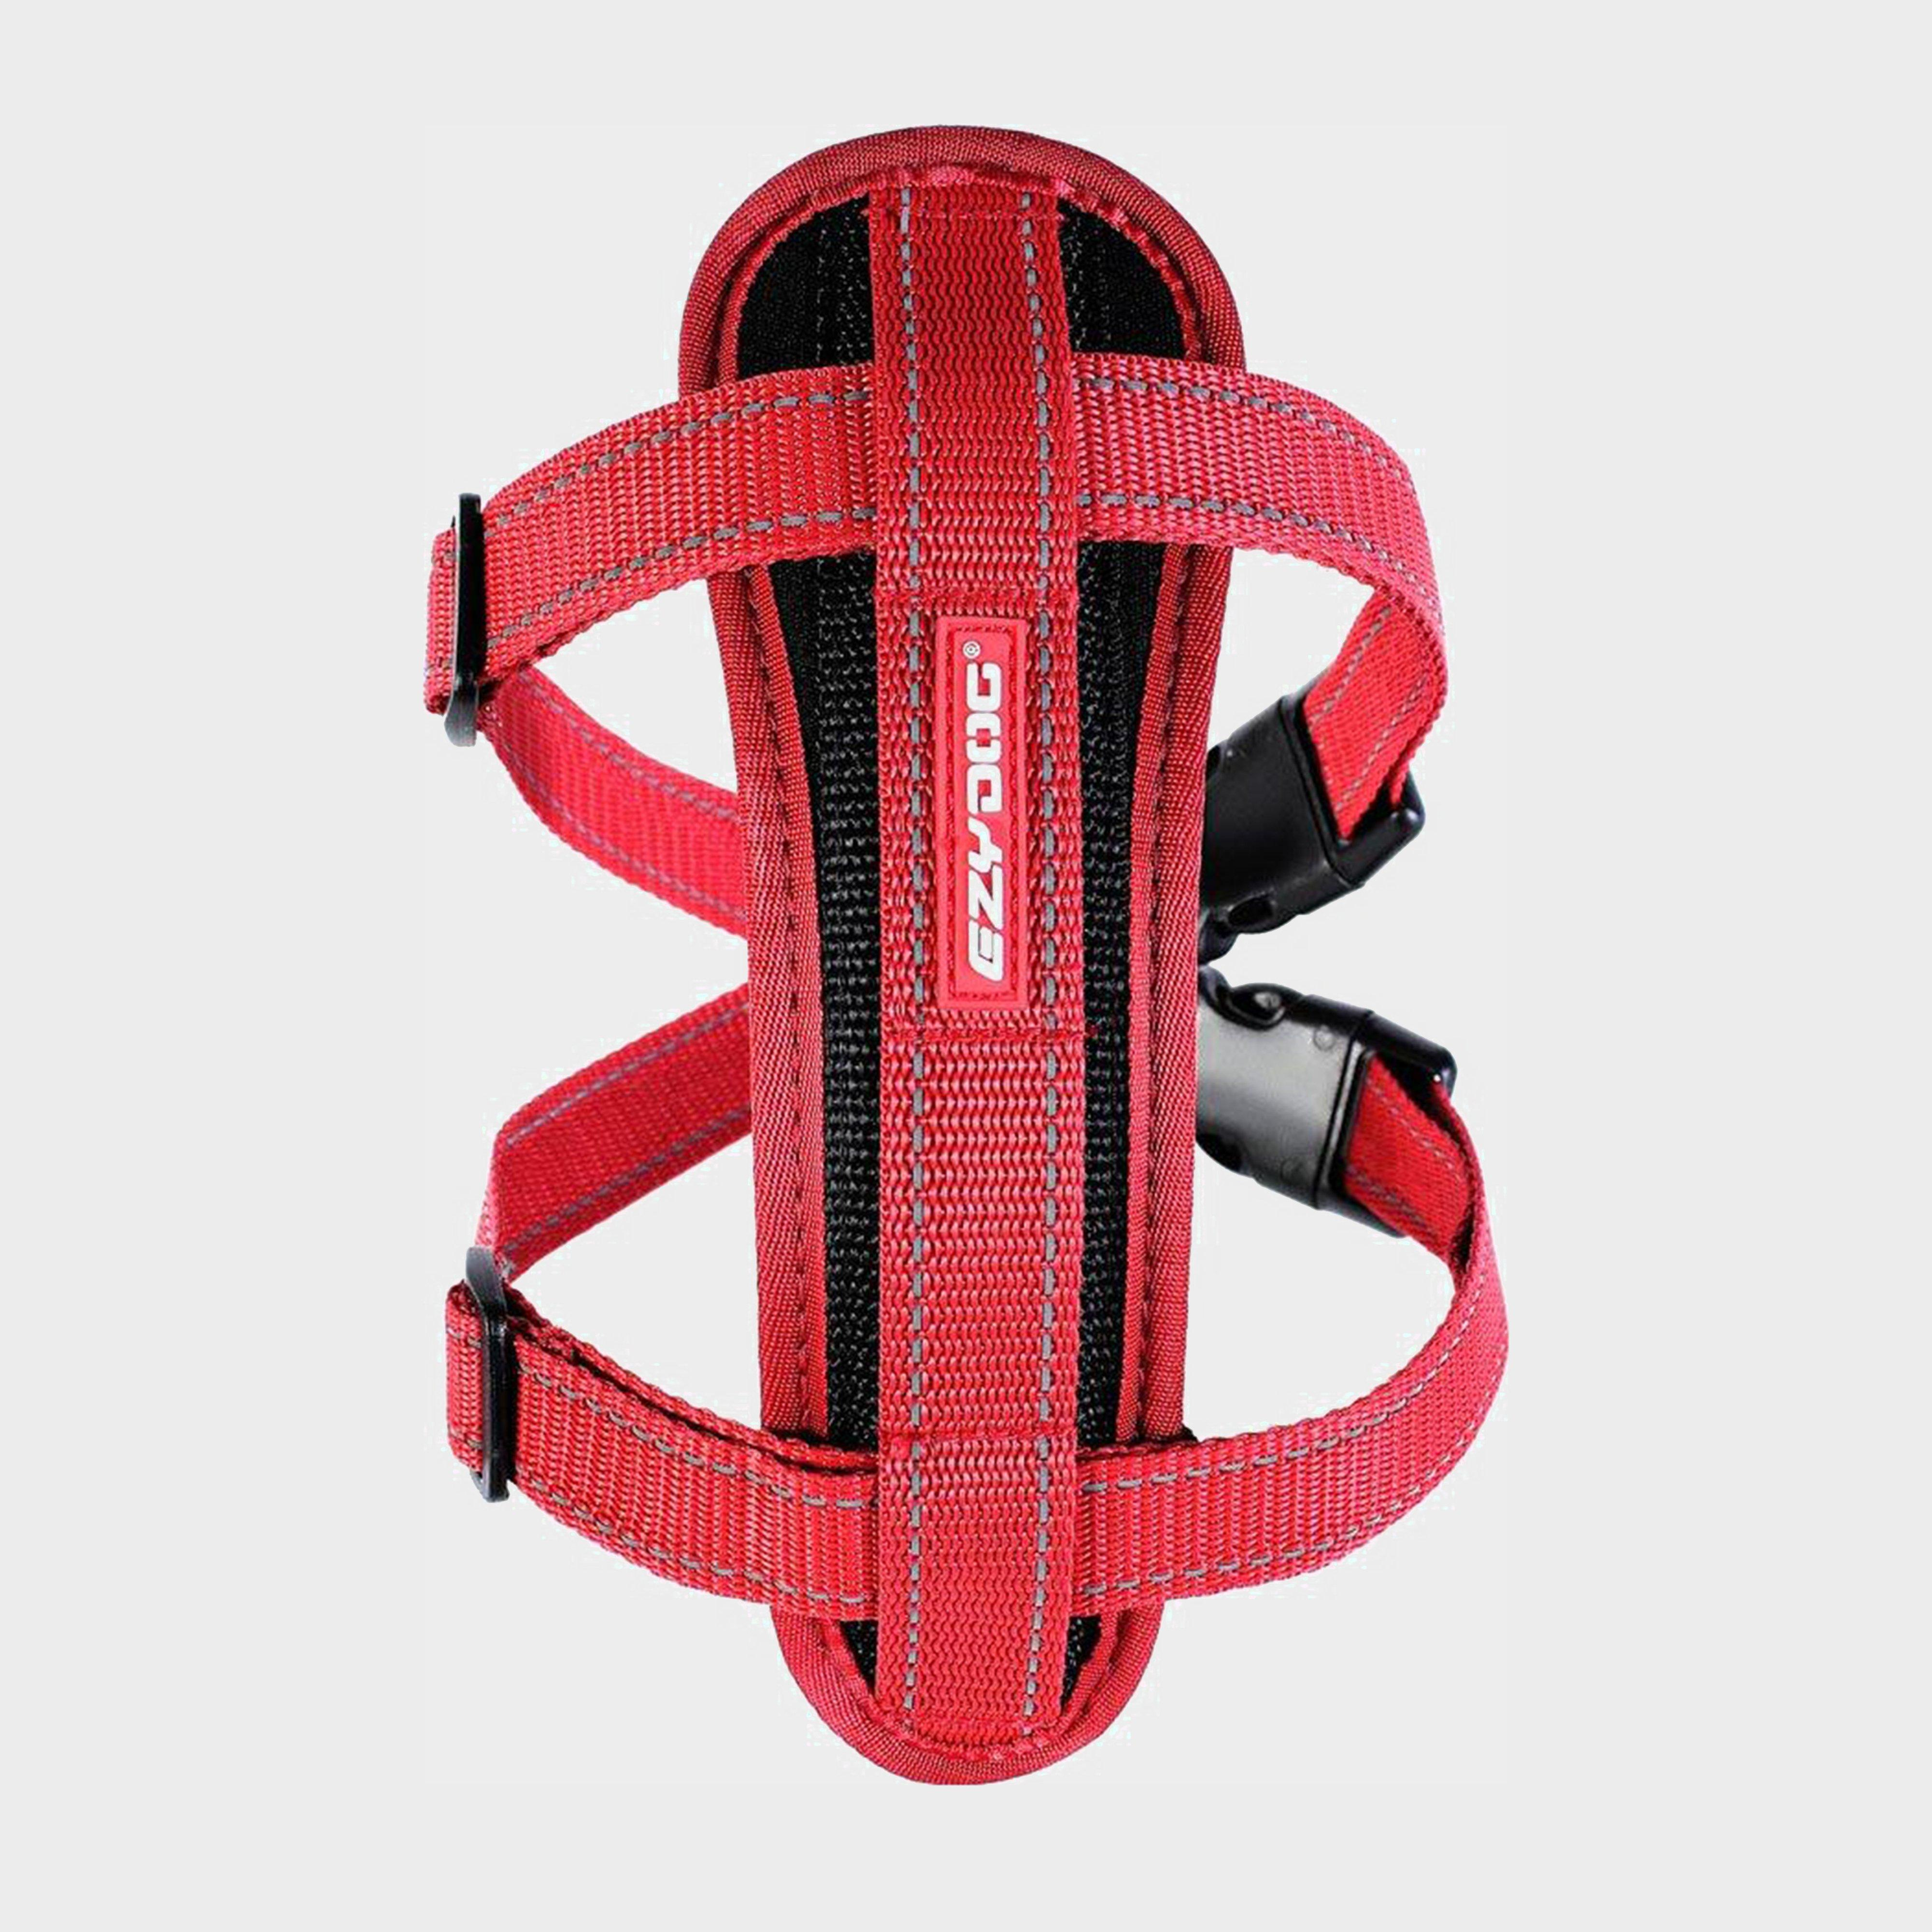 Image of Ezy-Dog Chest Plate Harness (Large) - Red/Harnes, Red/HARNES